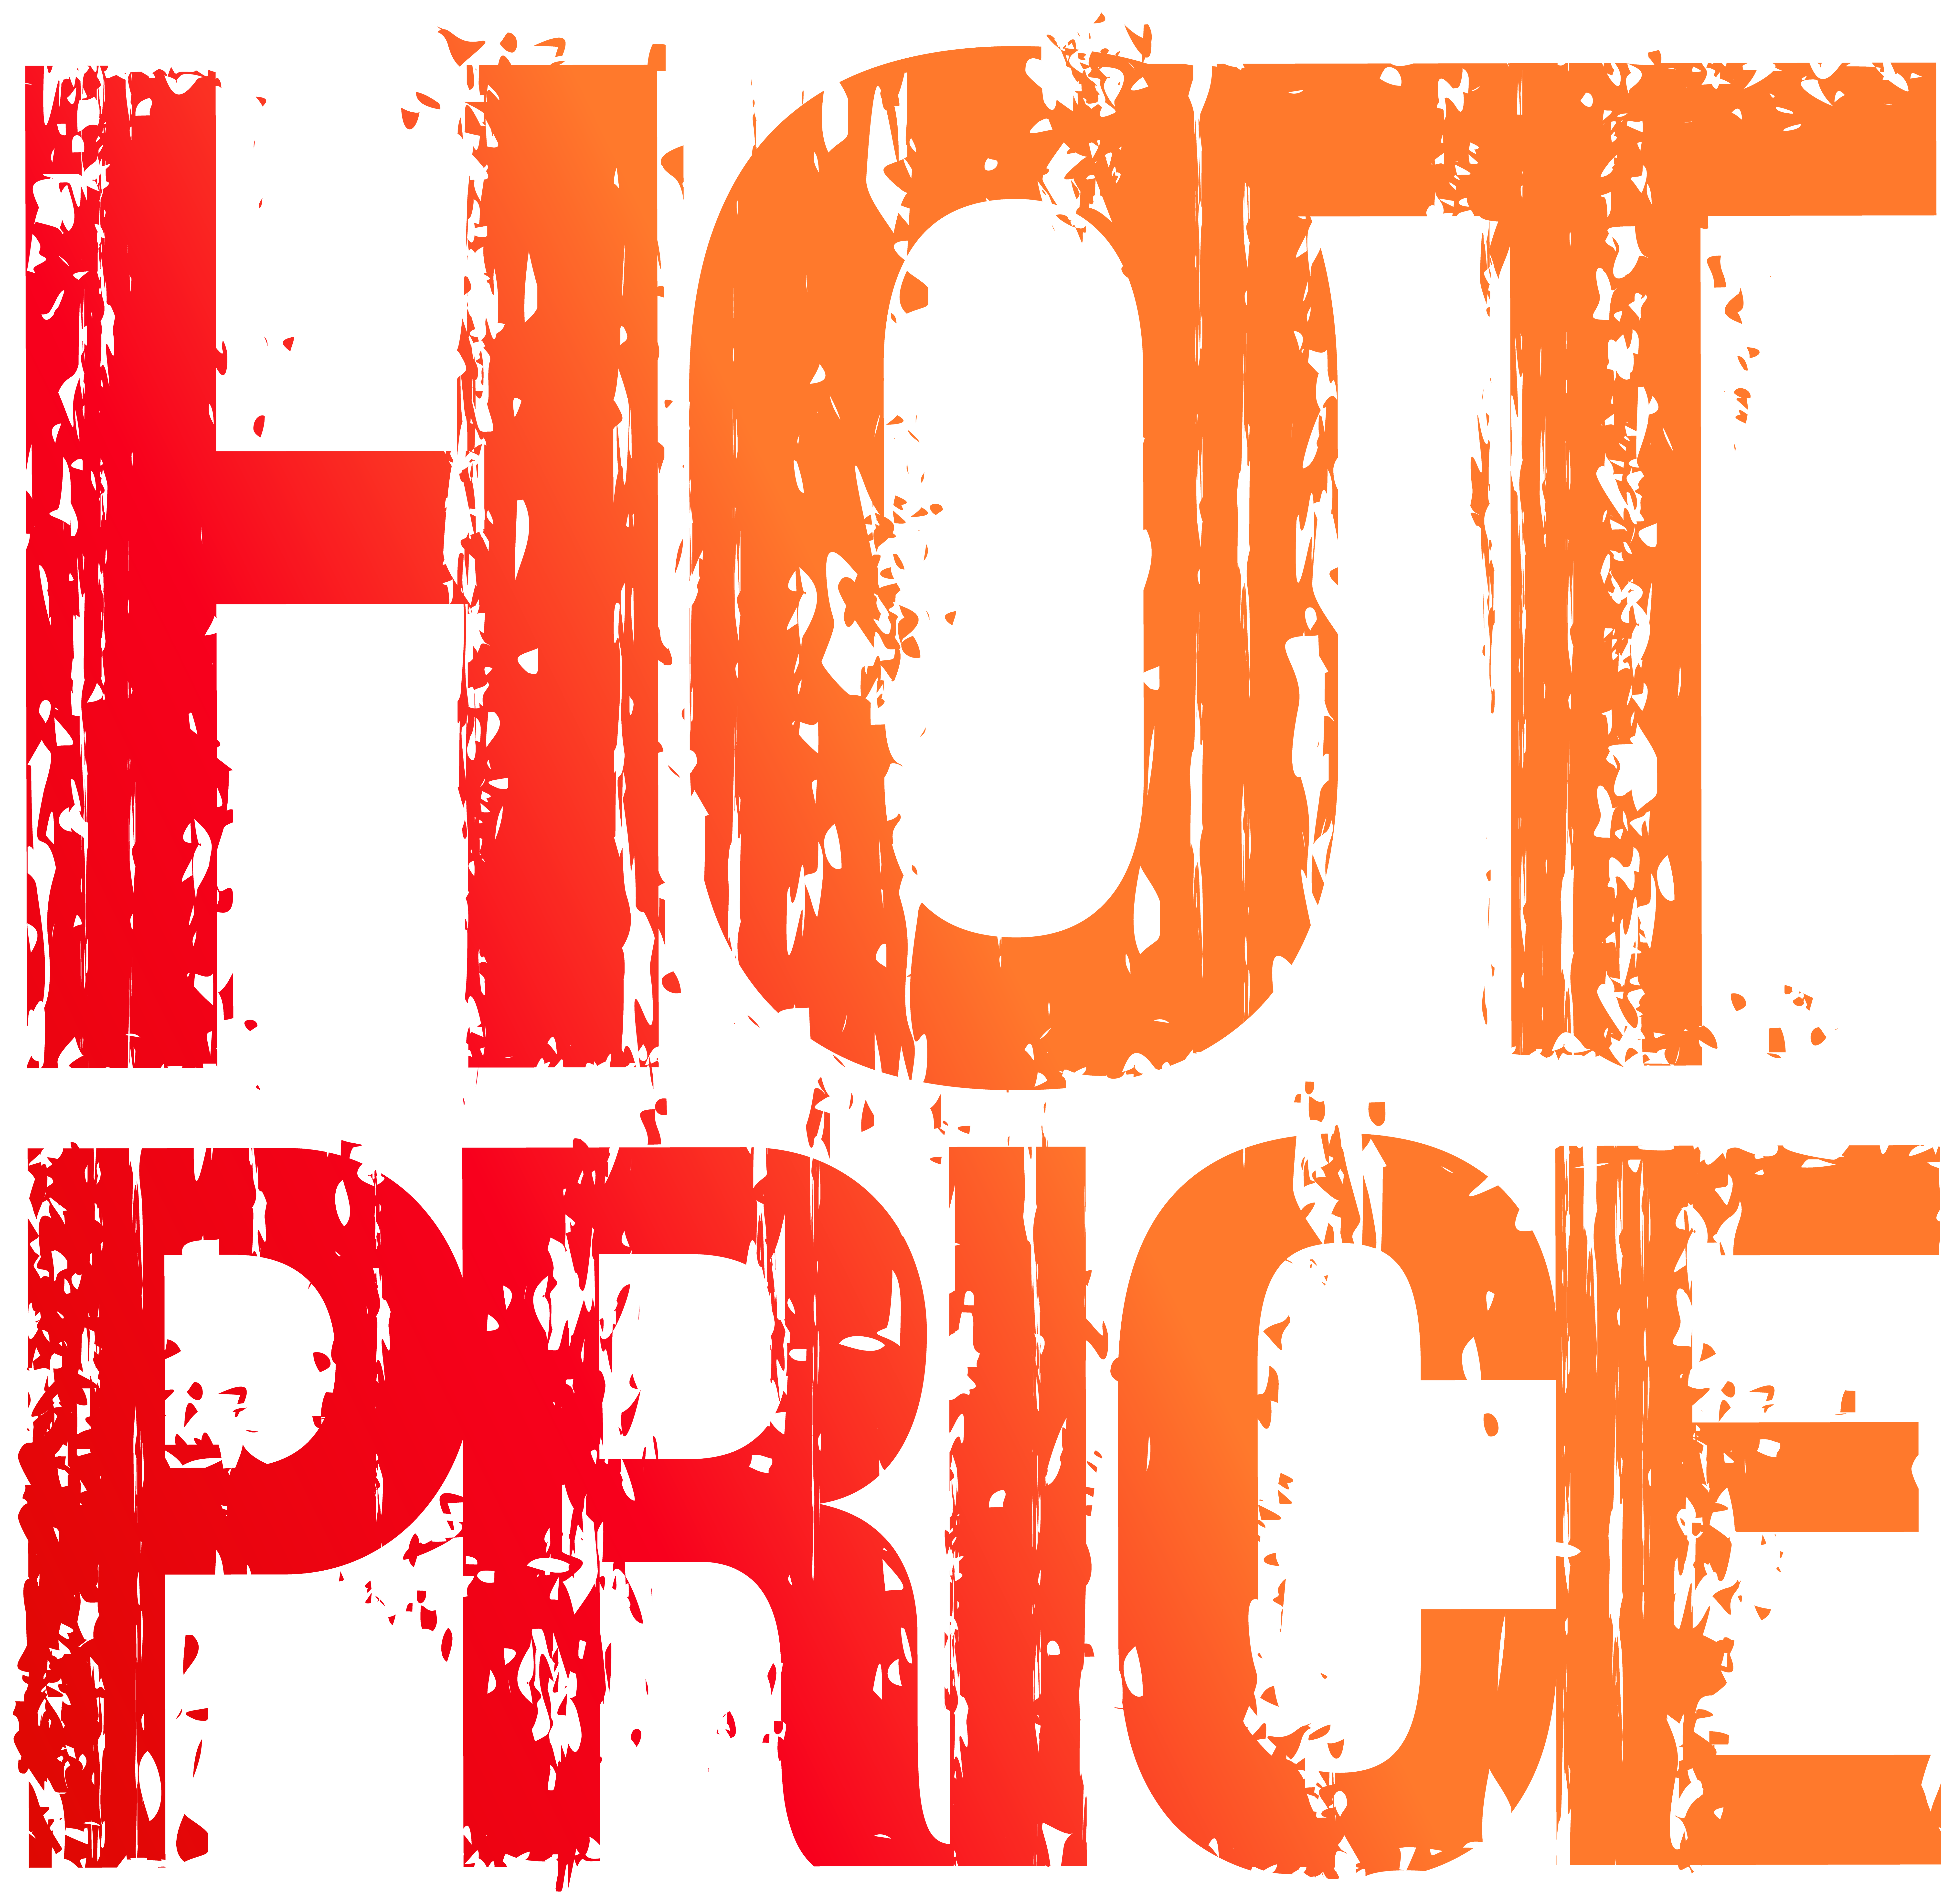 Hot Price Stamp PNG Clip Art Image.